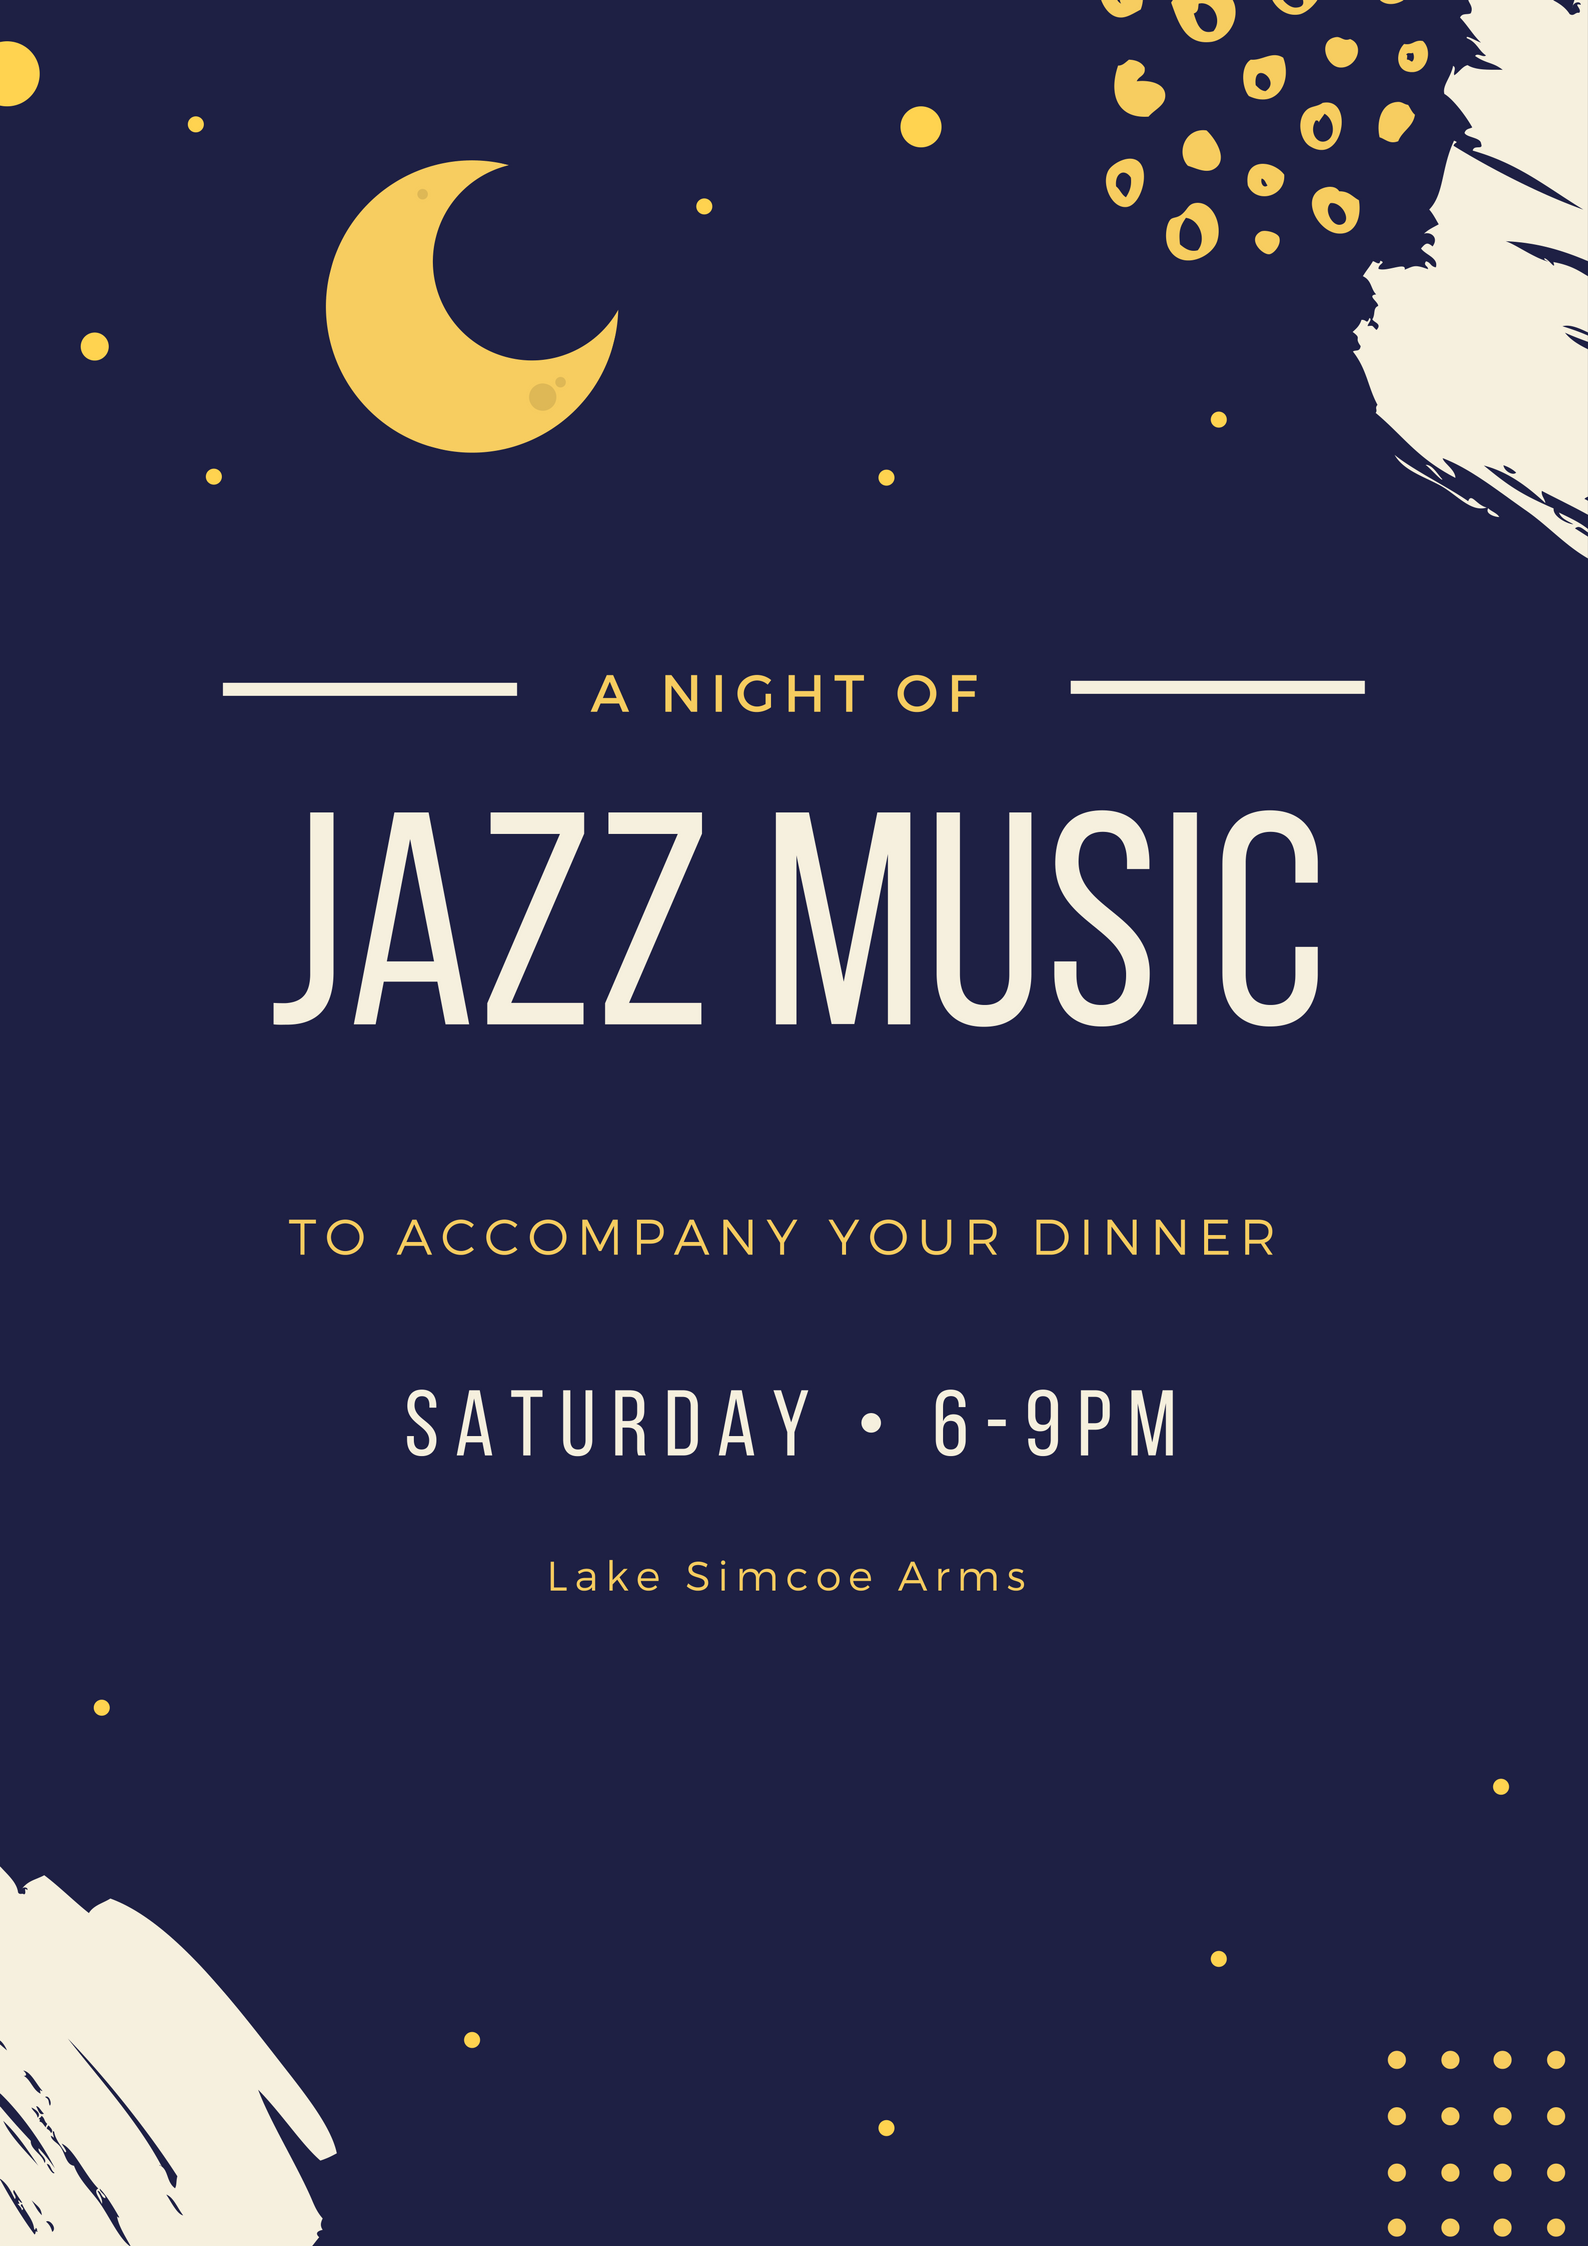 Saturday, October 7th - Dinner Jazz  We are happy to welcome back jazz duo Joe Agnello & Frank Gennuso to The Arms! This is the 3rd year that they will be providing us with Saturday night jazz music to accompany dinner every Saturday from 6-9pm.